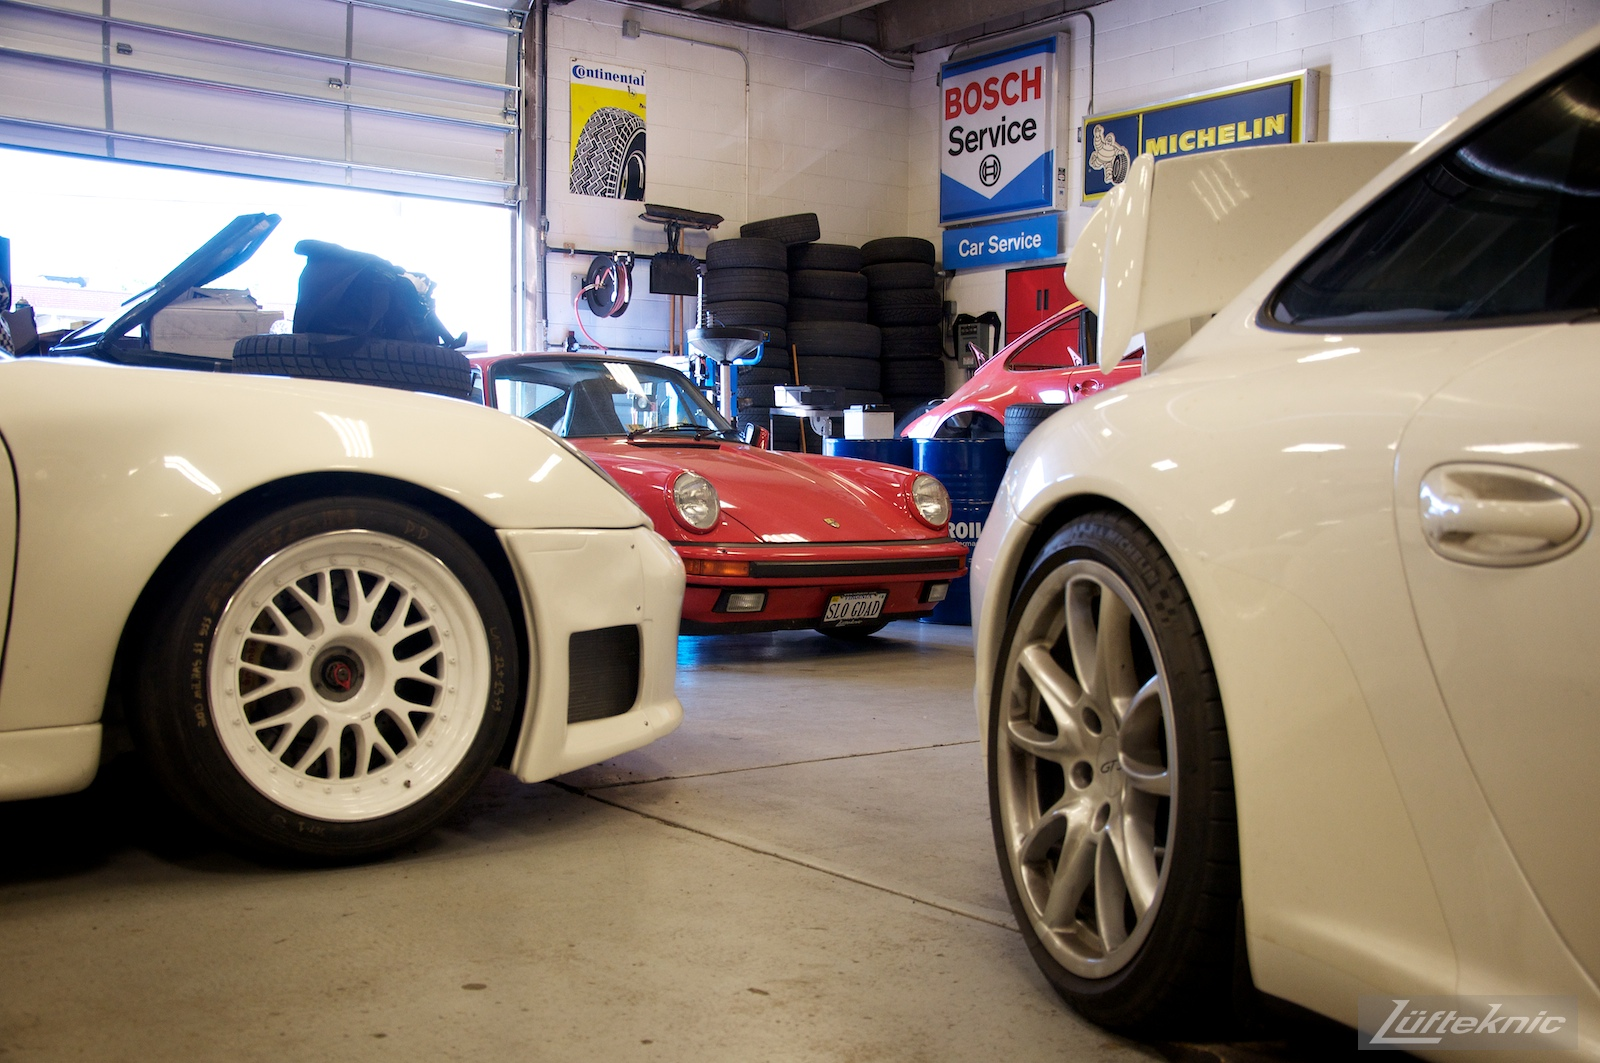 Two white Porsches and one red Porsche inside the Lufteknic shop.